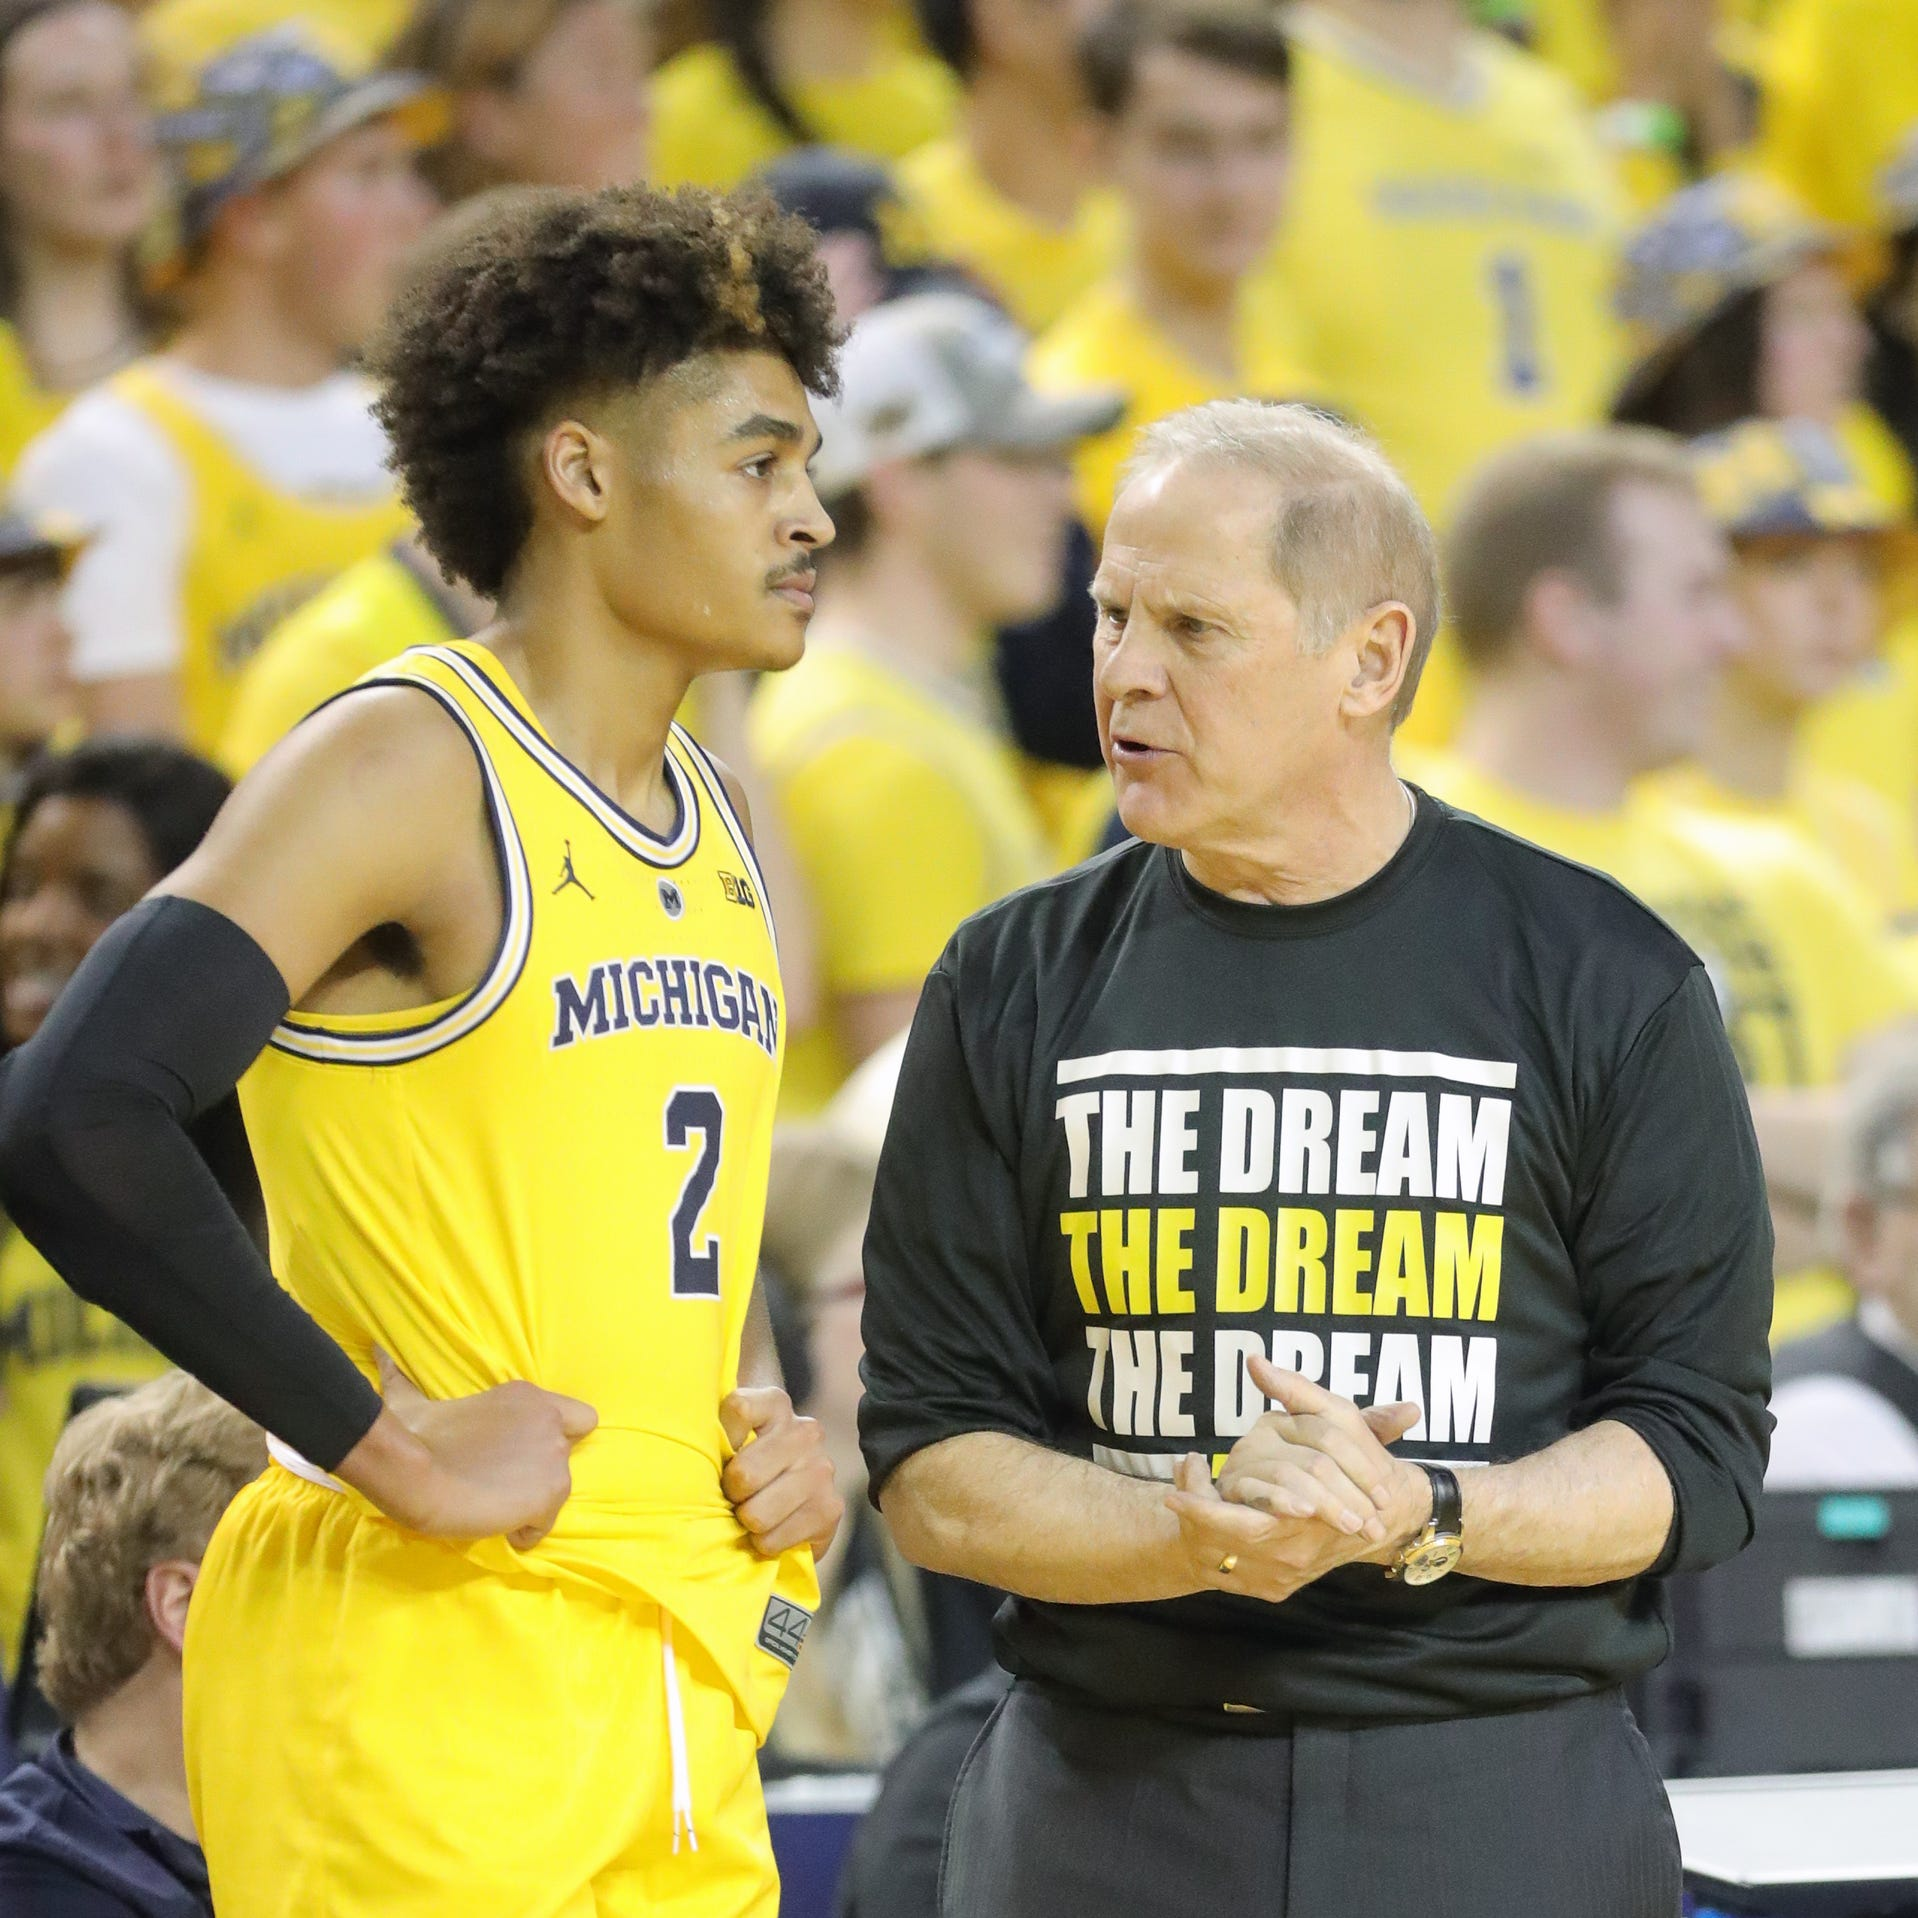 Michigan basketball's offense is struggling. Here's how to improve it